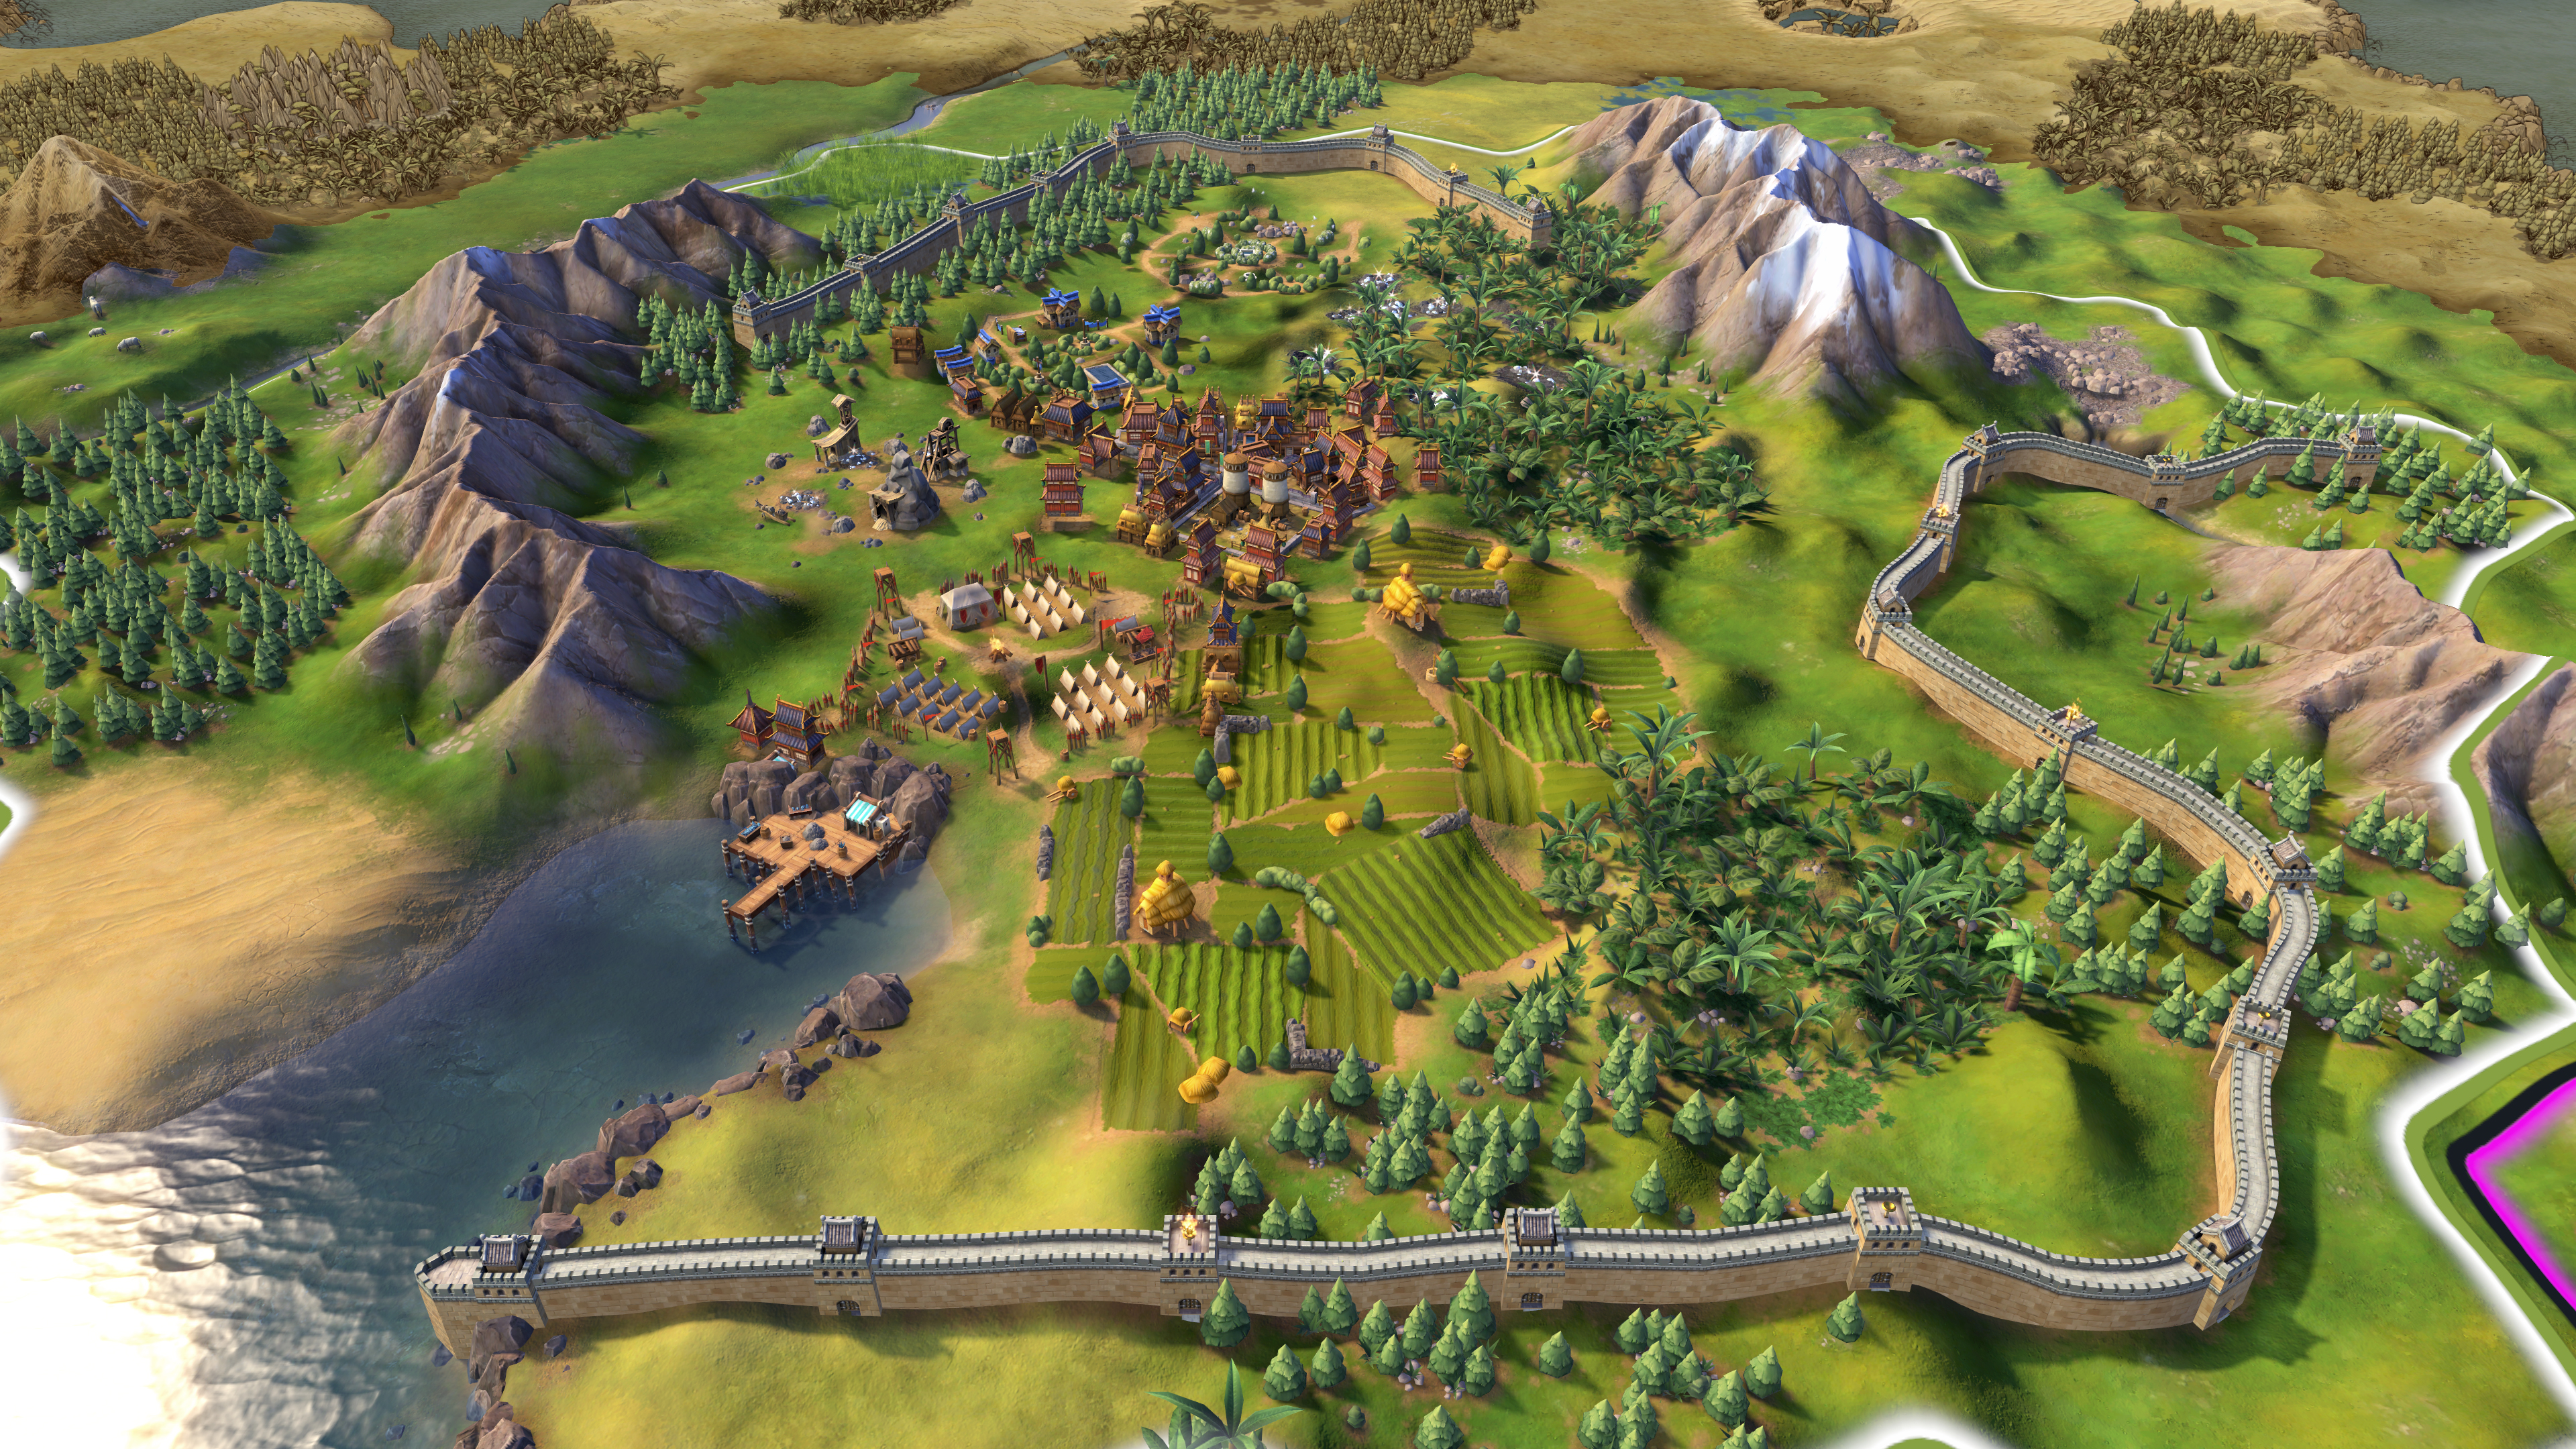 Civ 6' District Cheat Sheet: Tips, Tricks And Info On